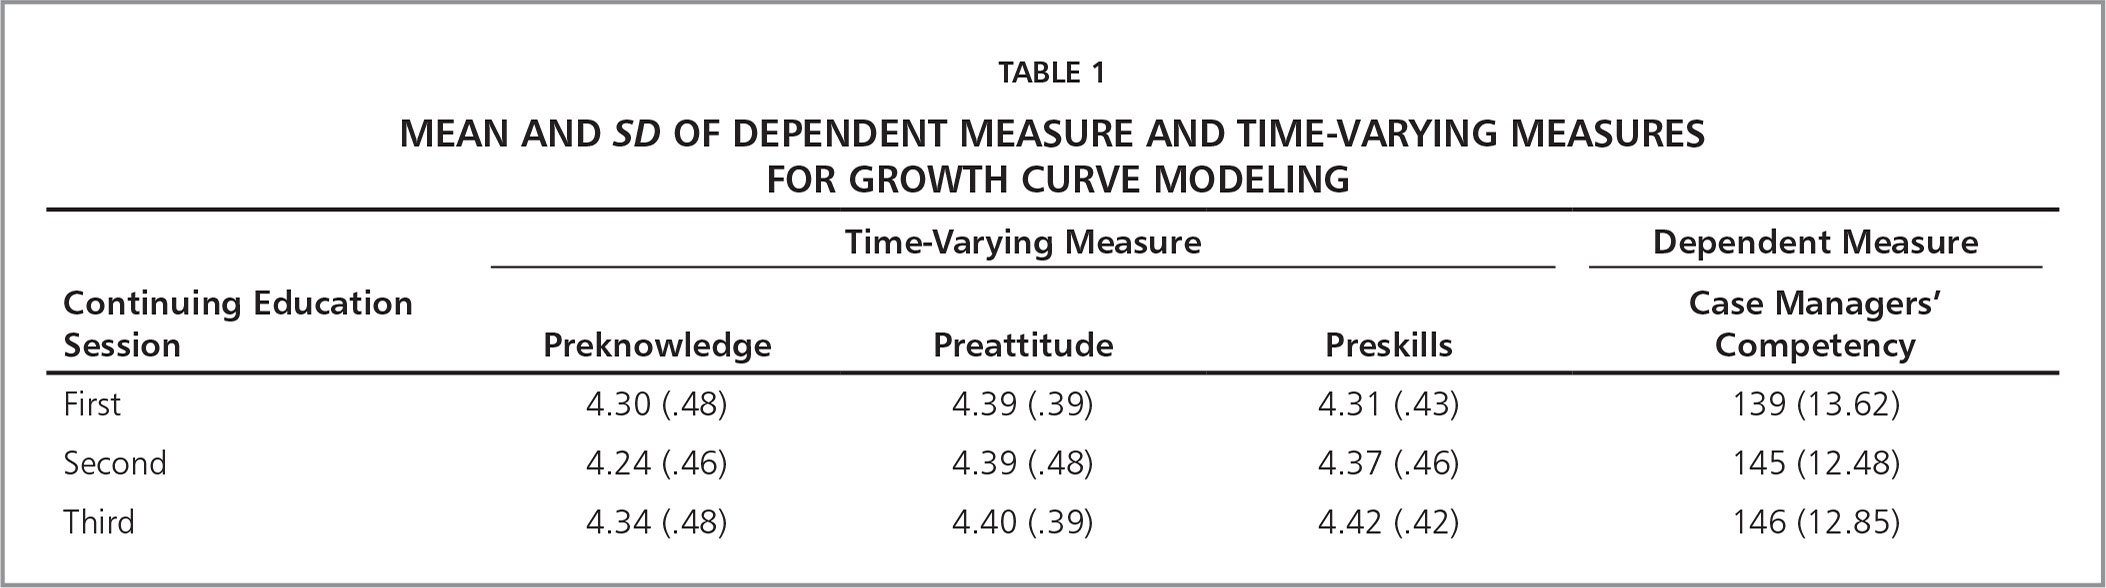 Mean and SD of Dependent Measure and Time-Varying Measures for Growth Curve Modeling